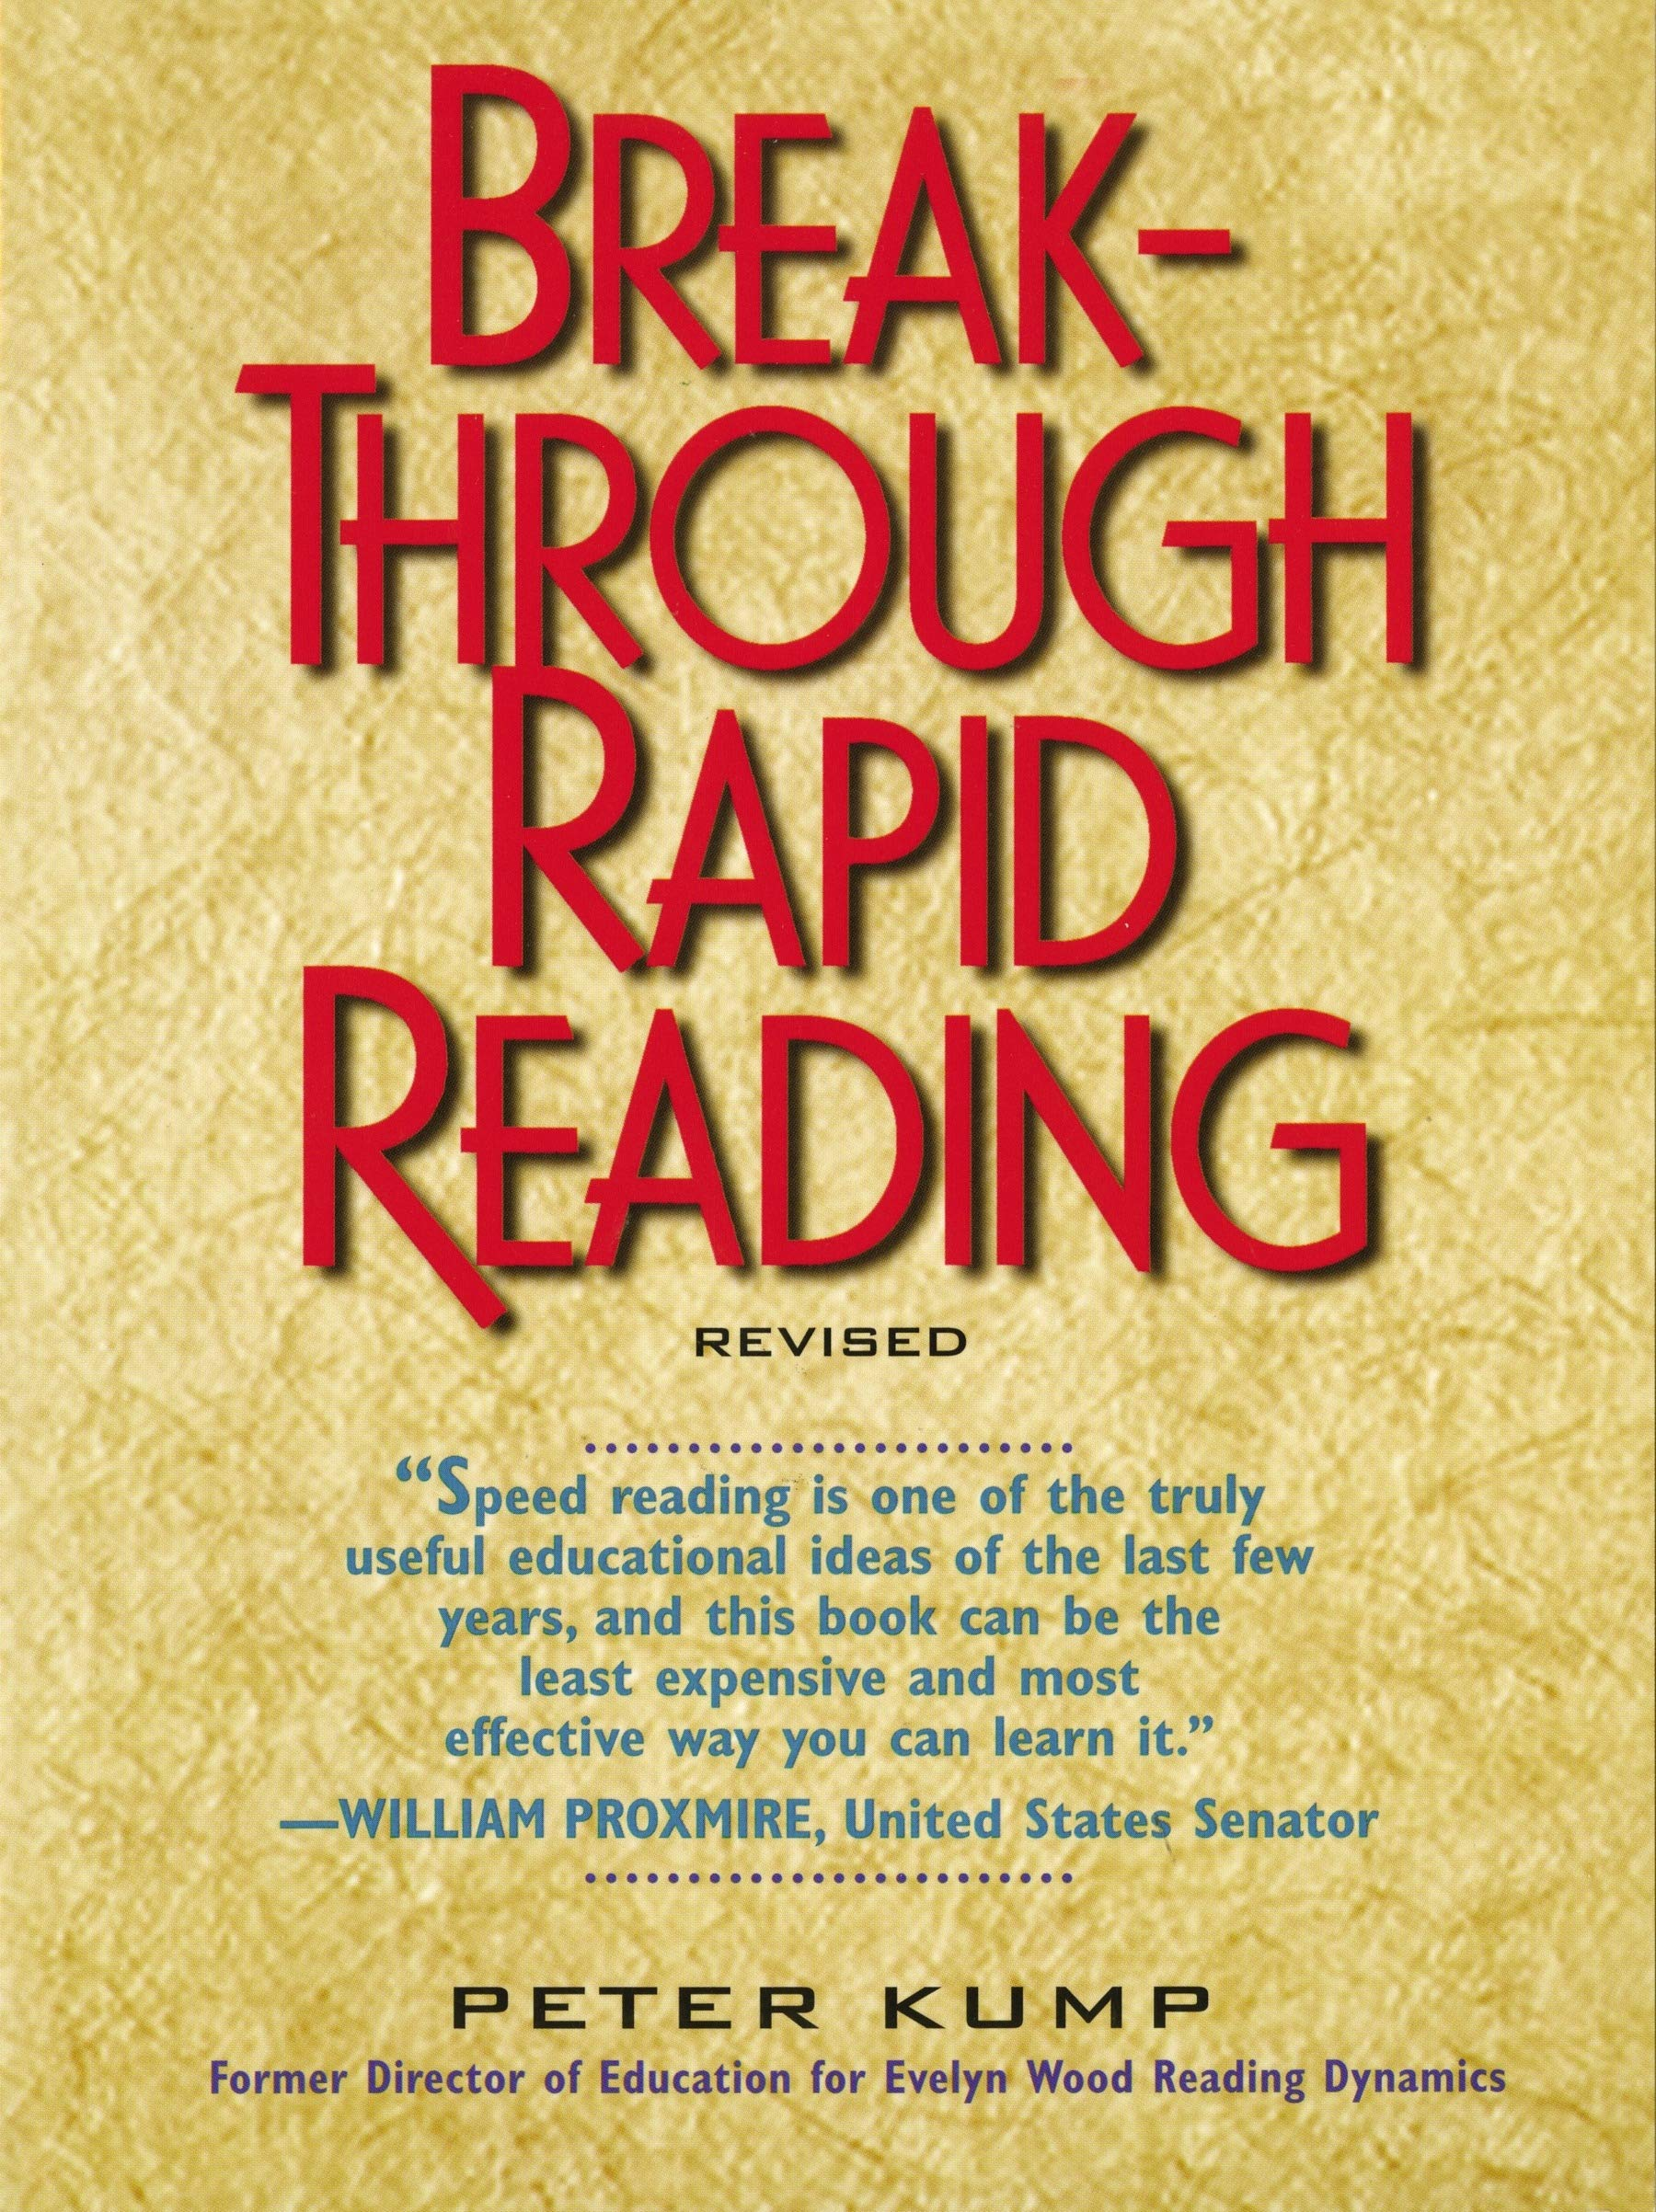 Image OfBreakthrough Rapid Reading